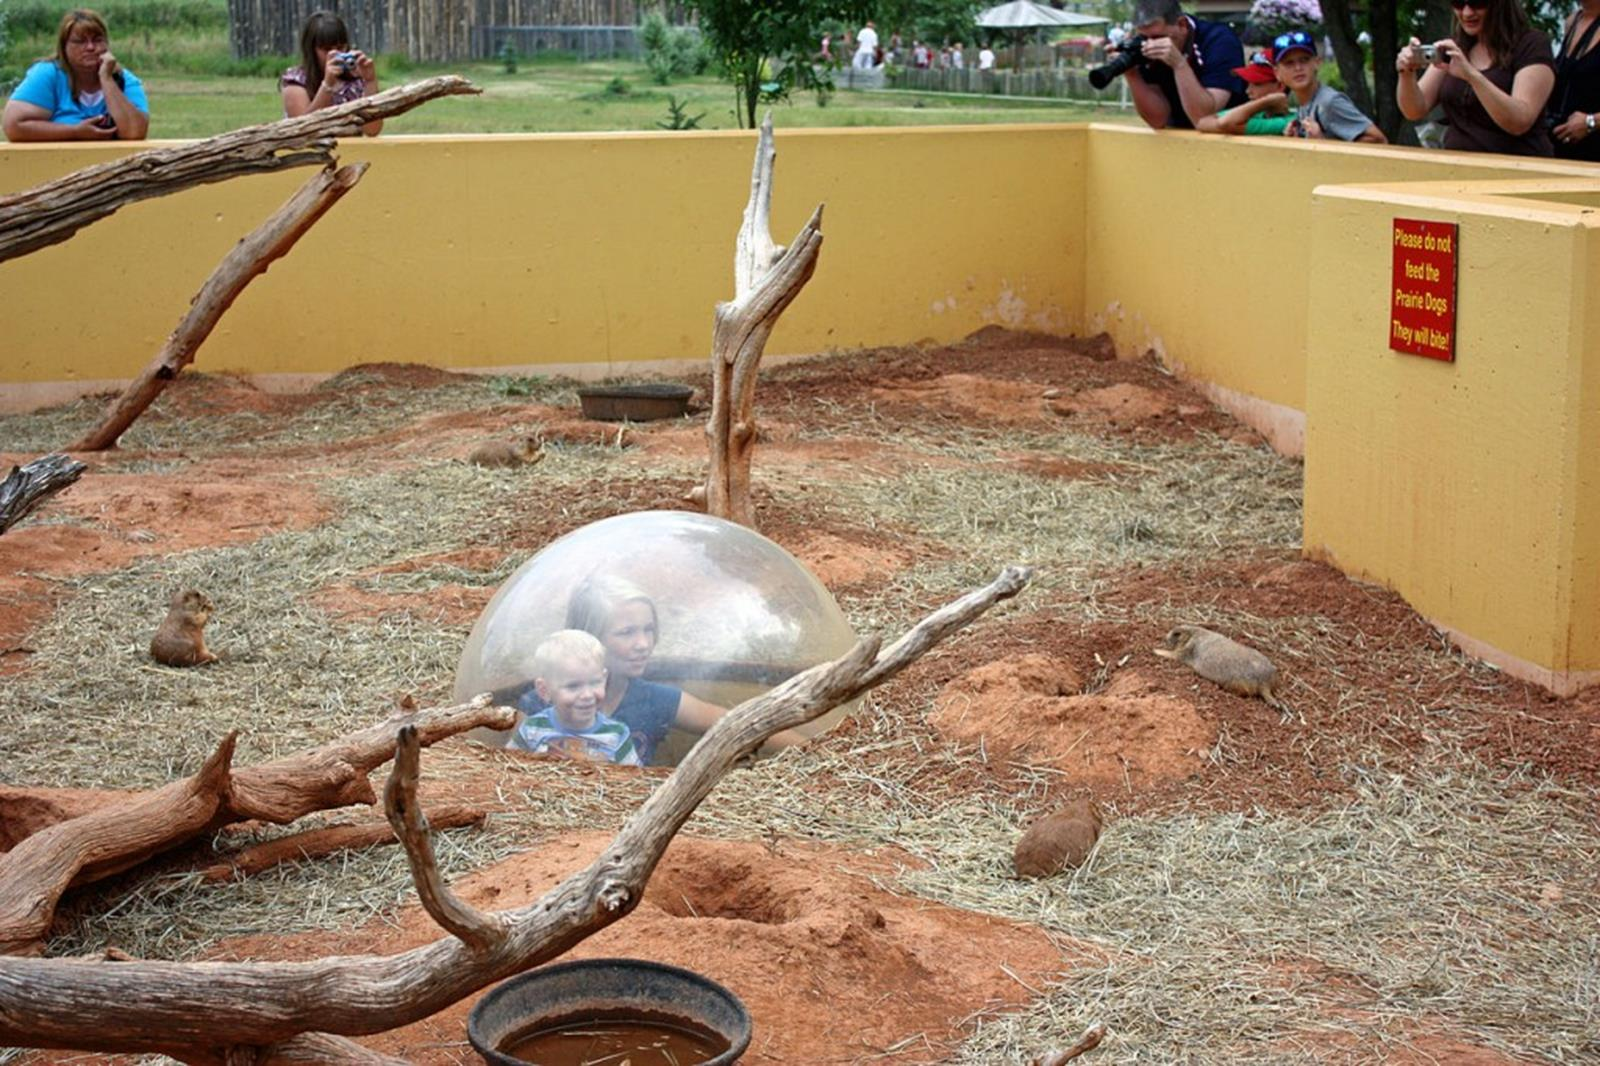 Prairie Dog Exhibit at Reptile Gardens